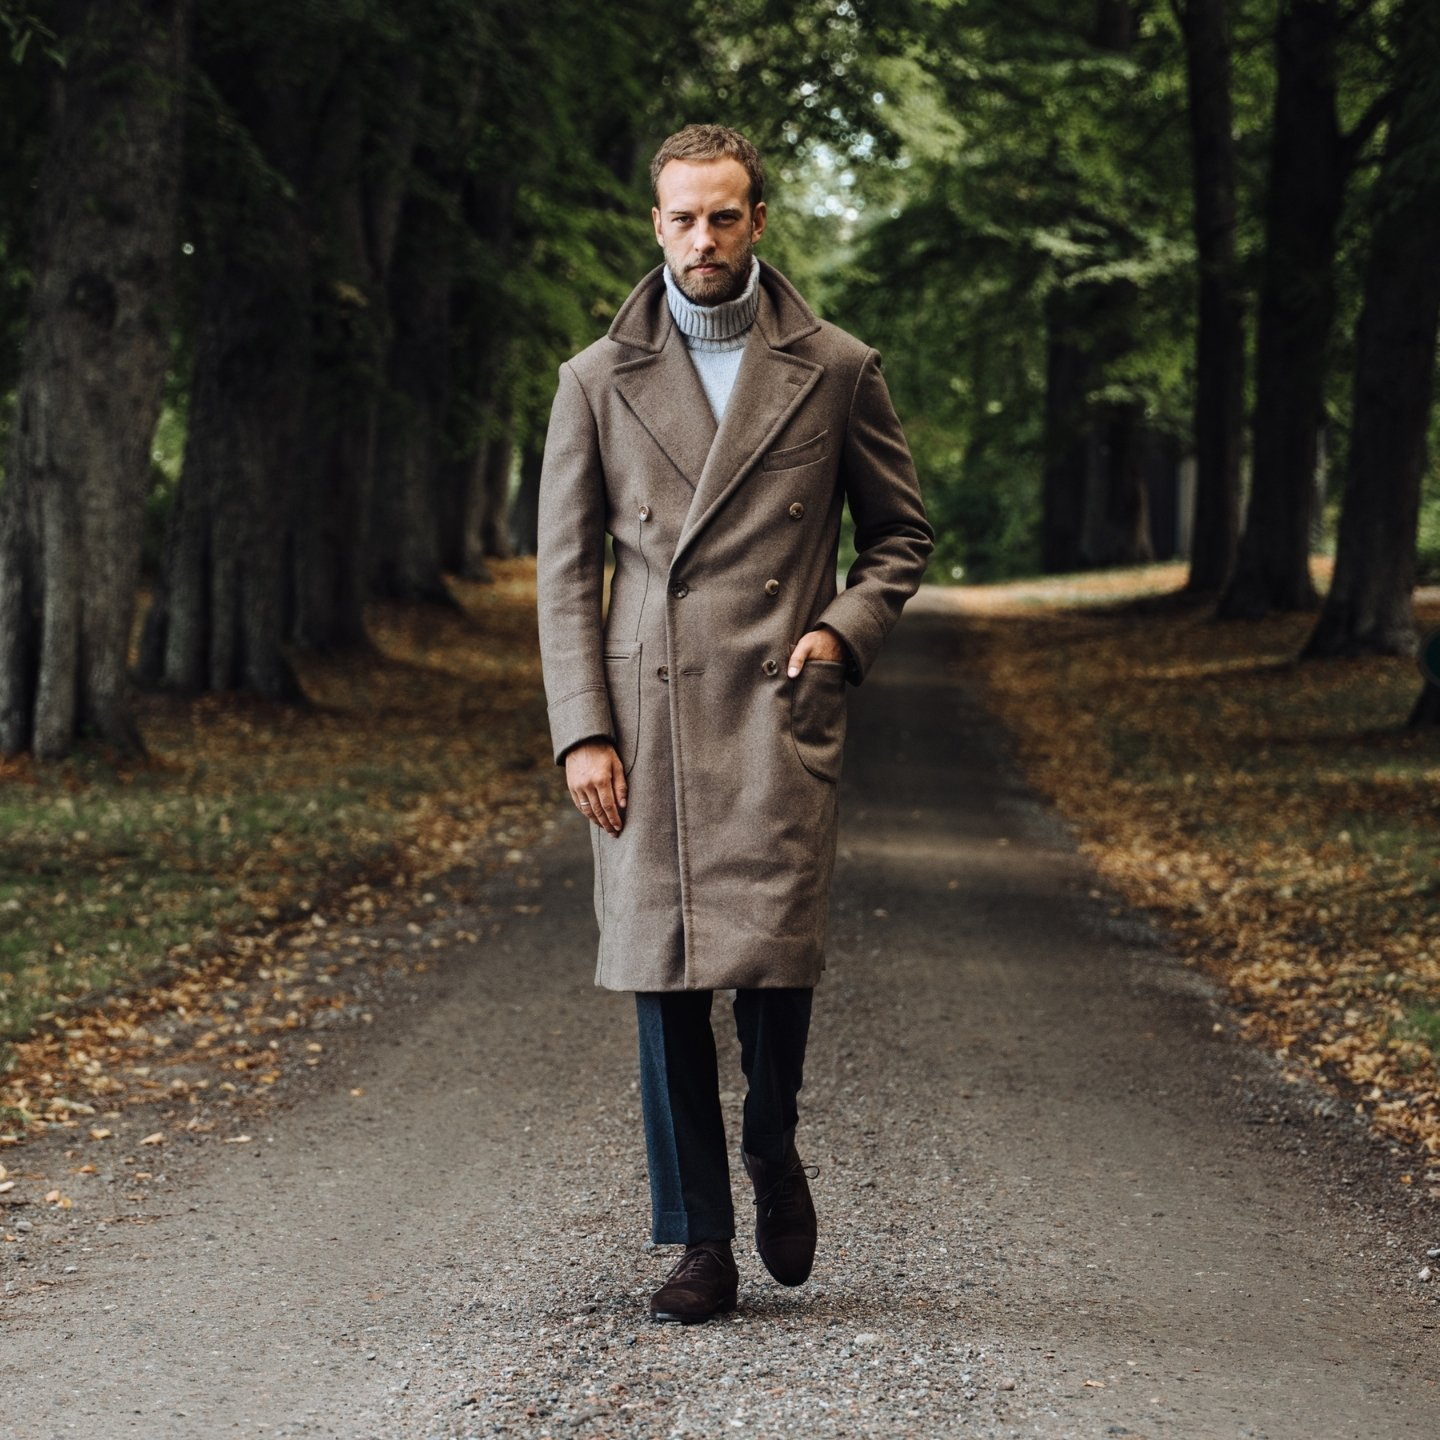 The polo coat in taupe